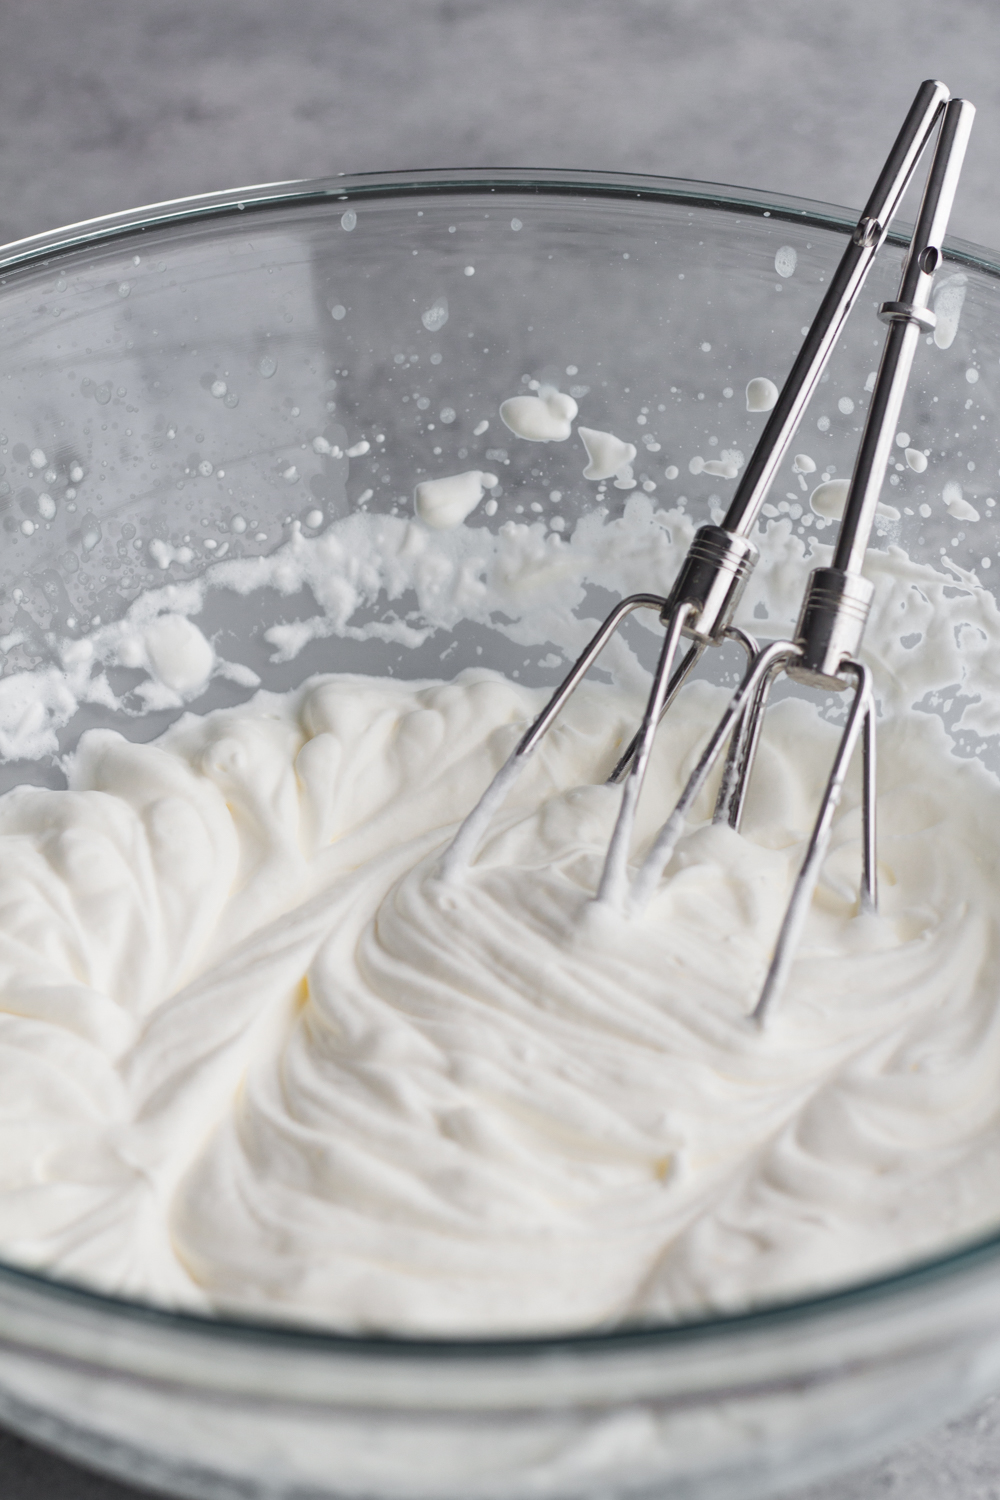 homemade whipped cream with beaters in a glass bowl on a gray surface